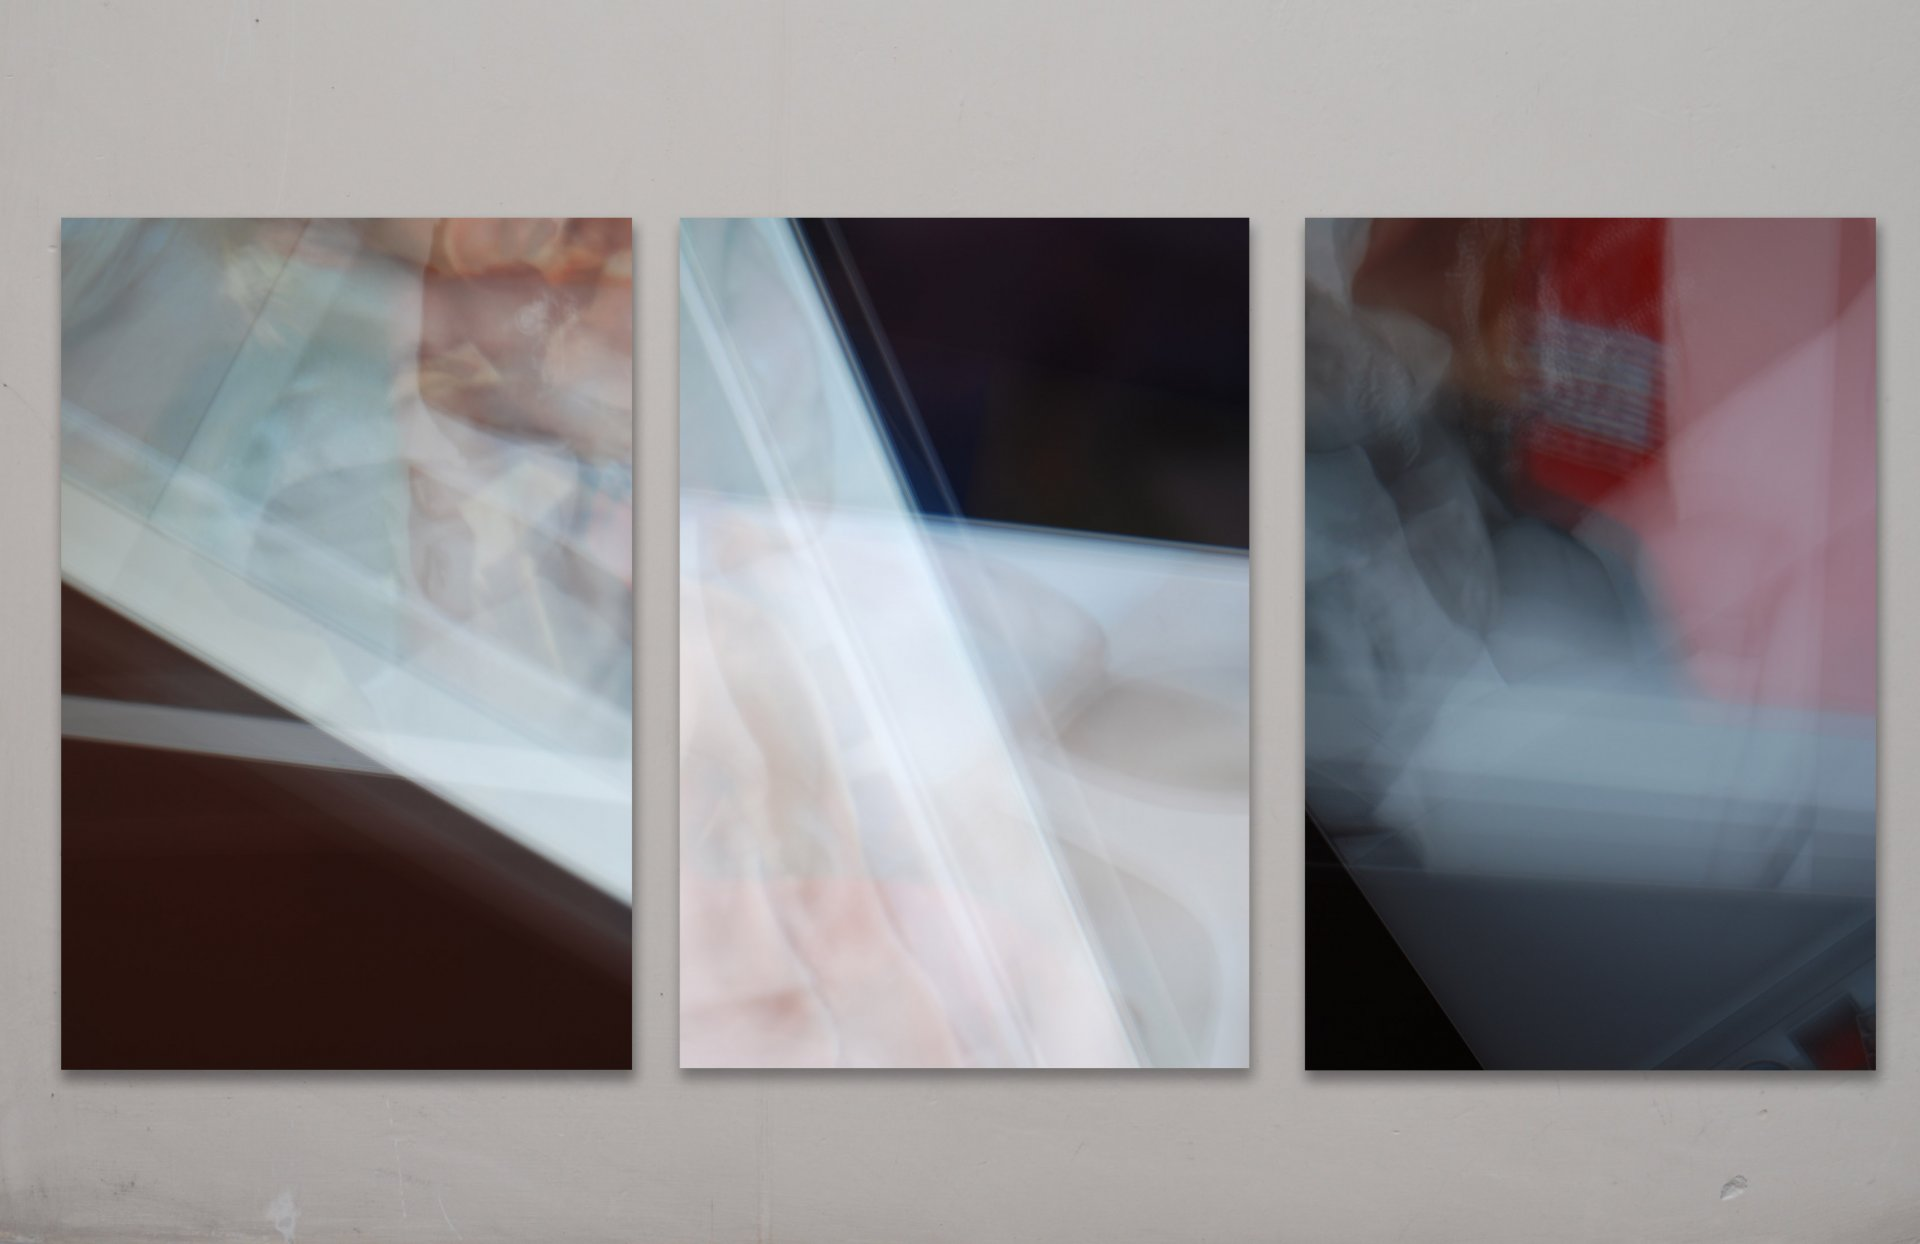 Photography of moving web images